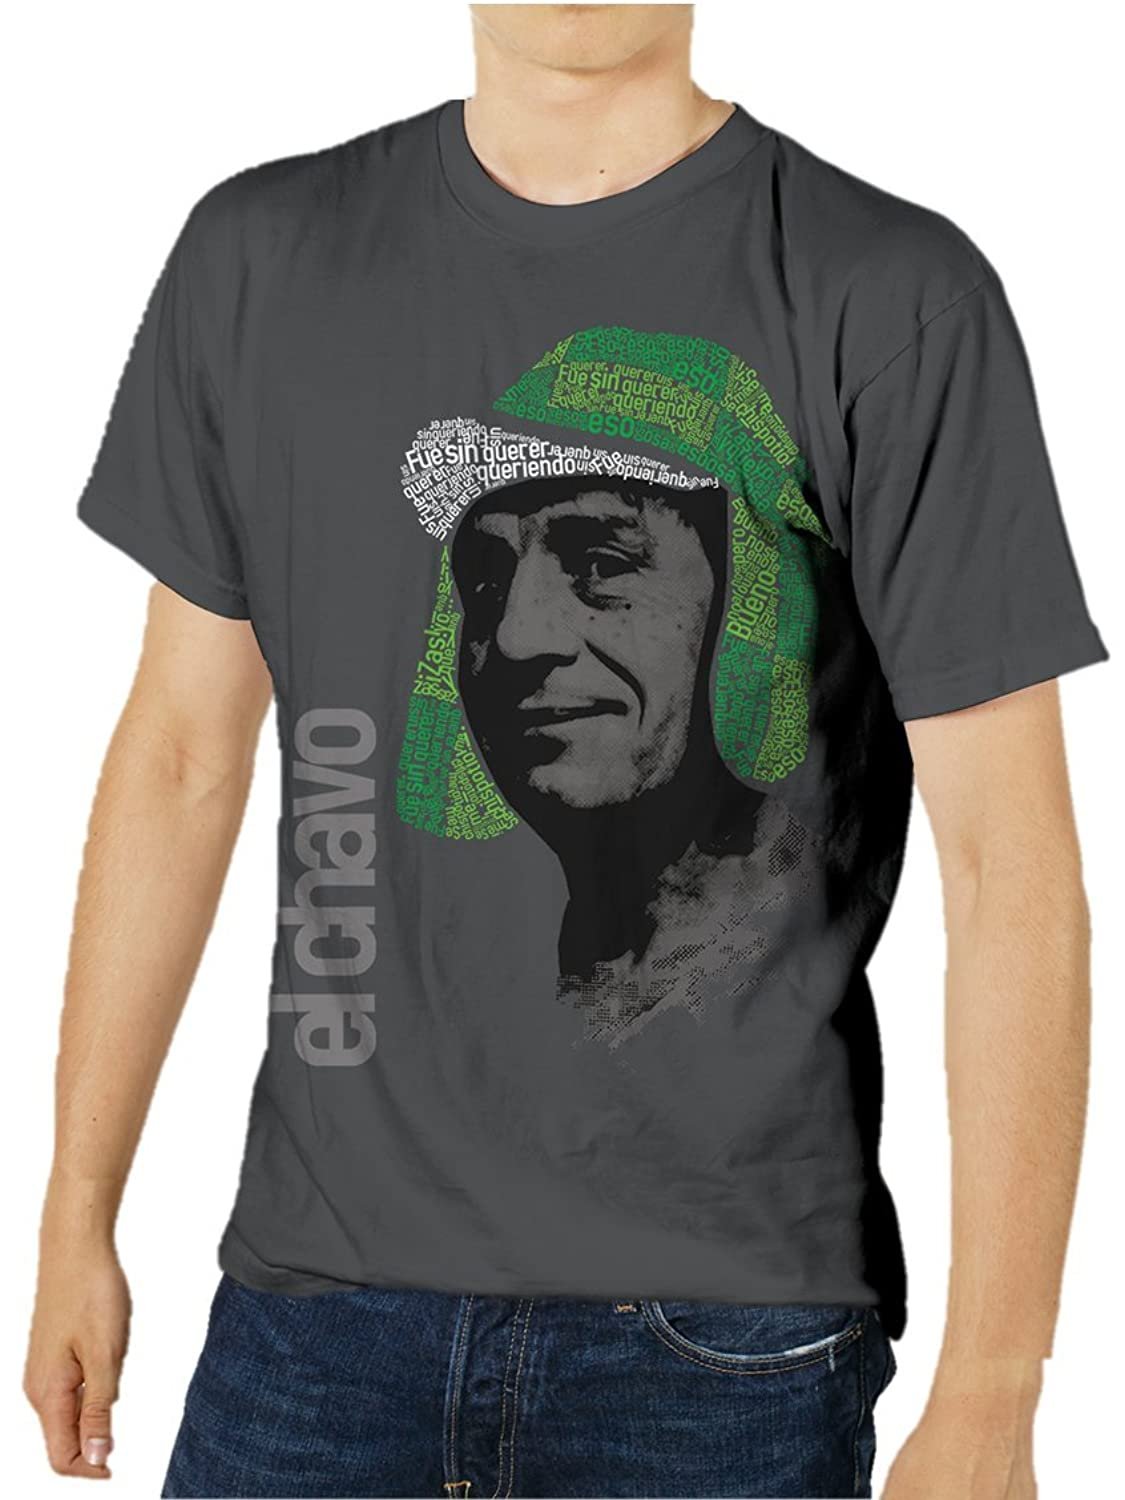 EL Chavo Del Ocho Collectible T-Shirt